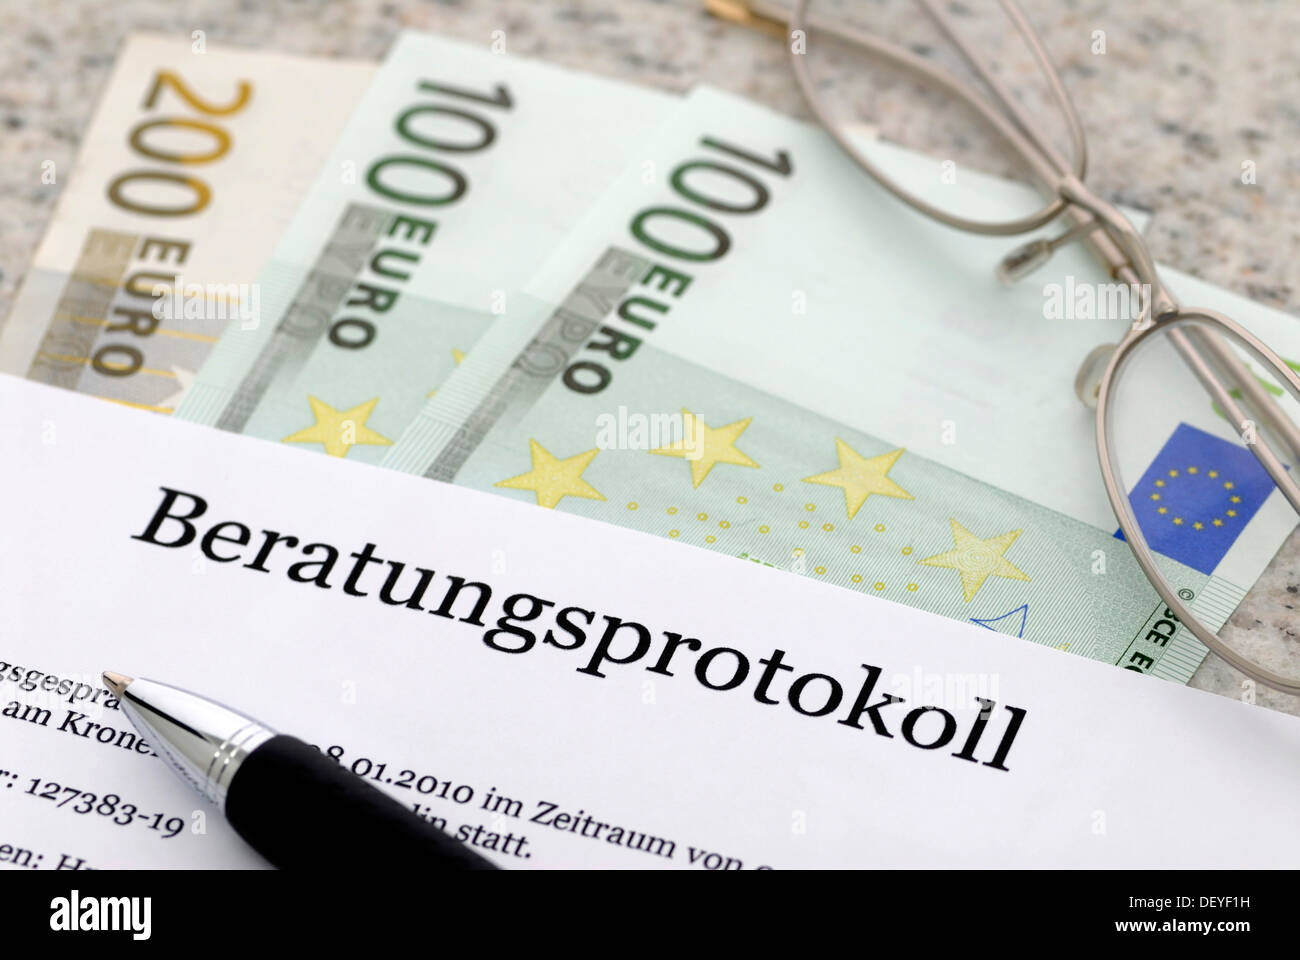 Consultation protocol for banking and insurance talks - Stock Image